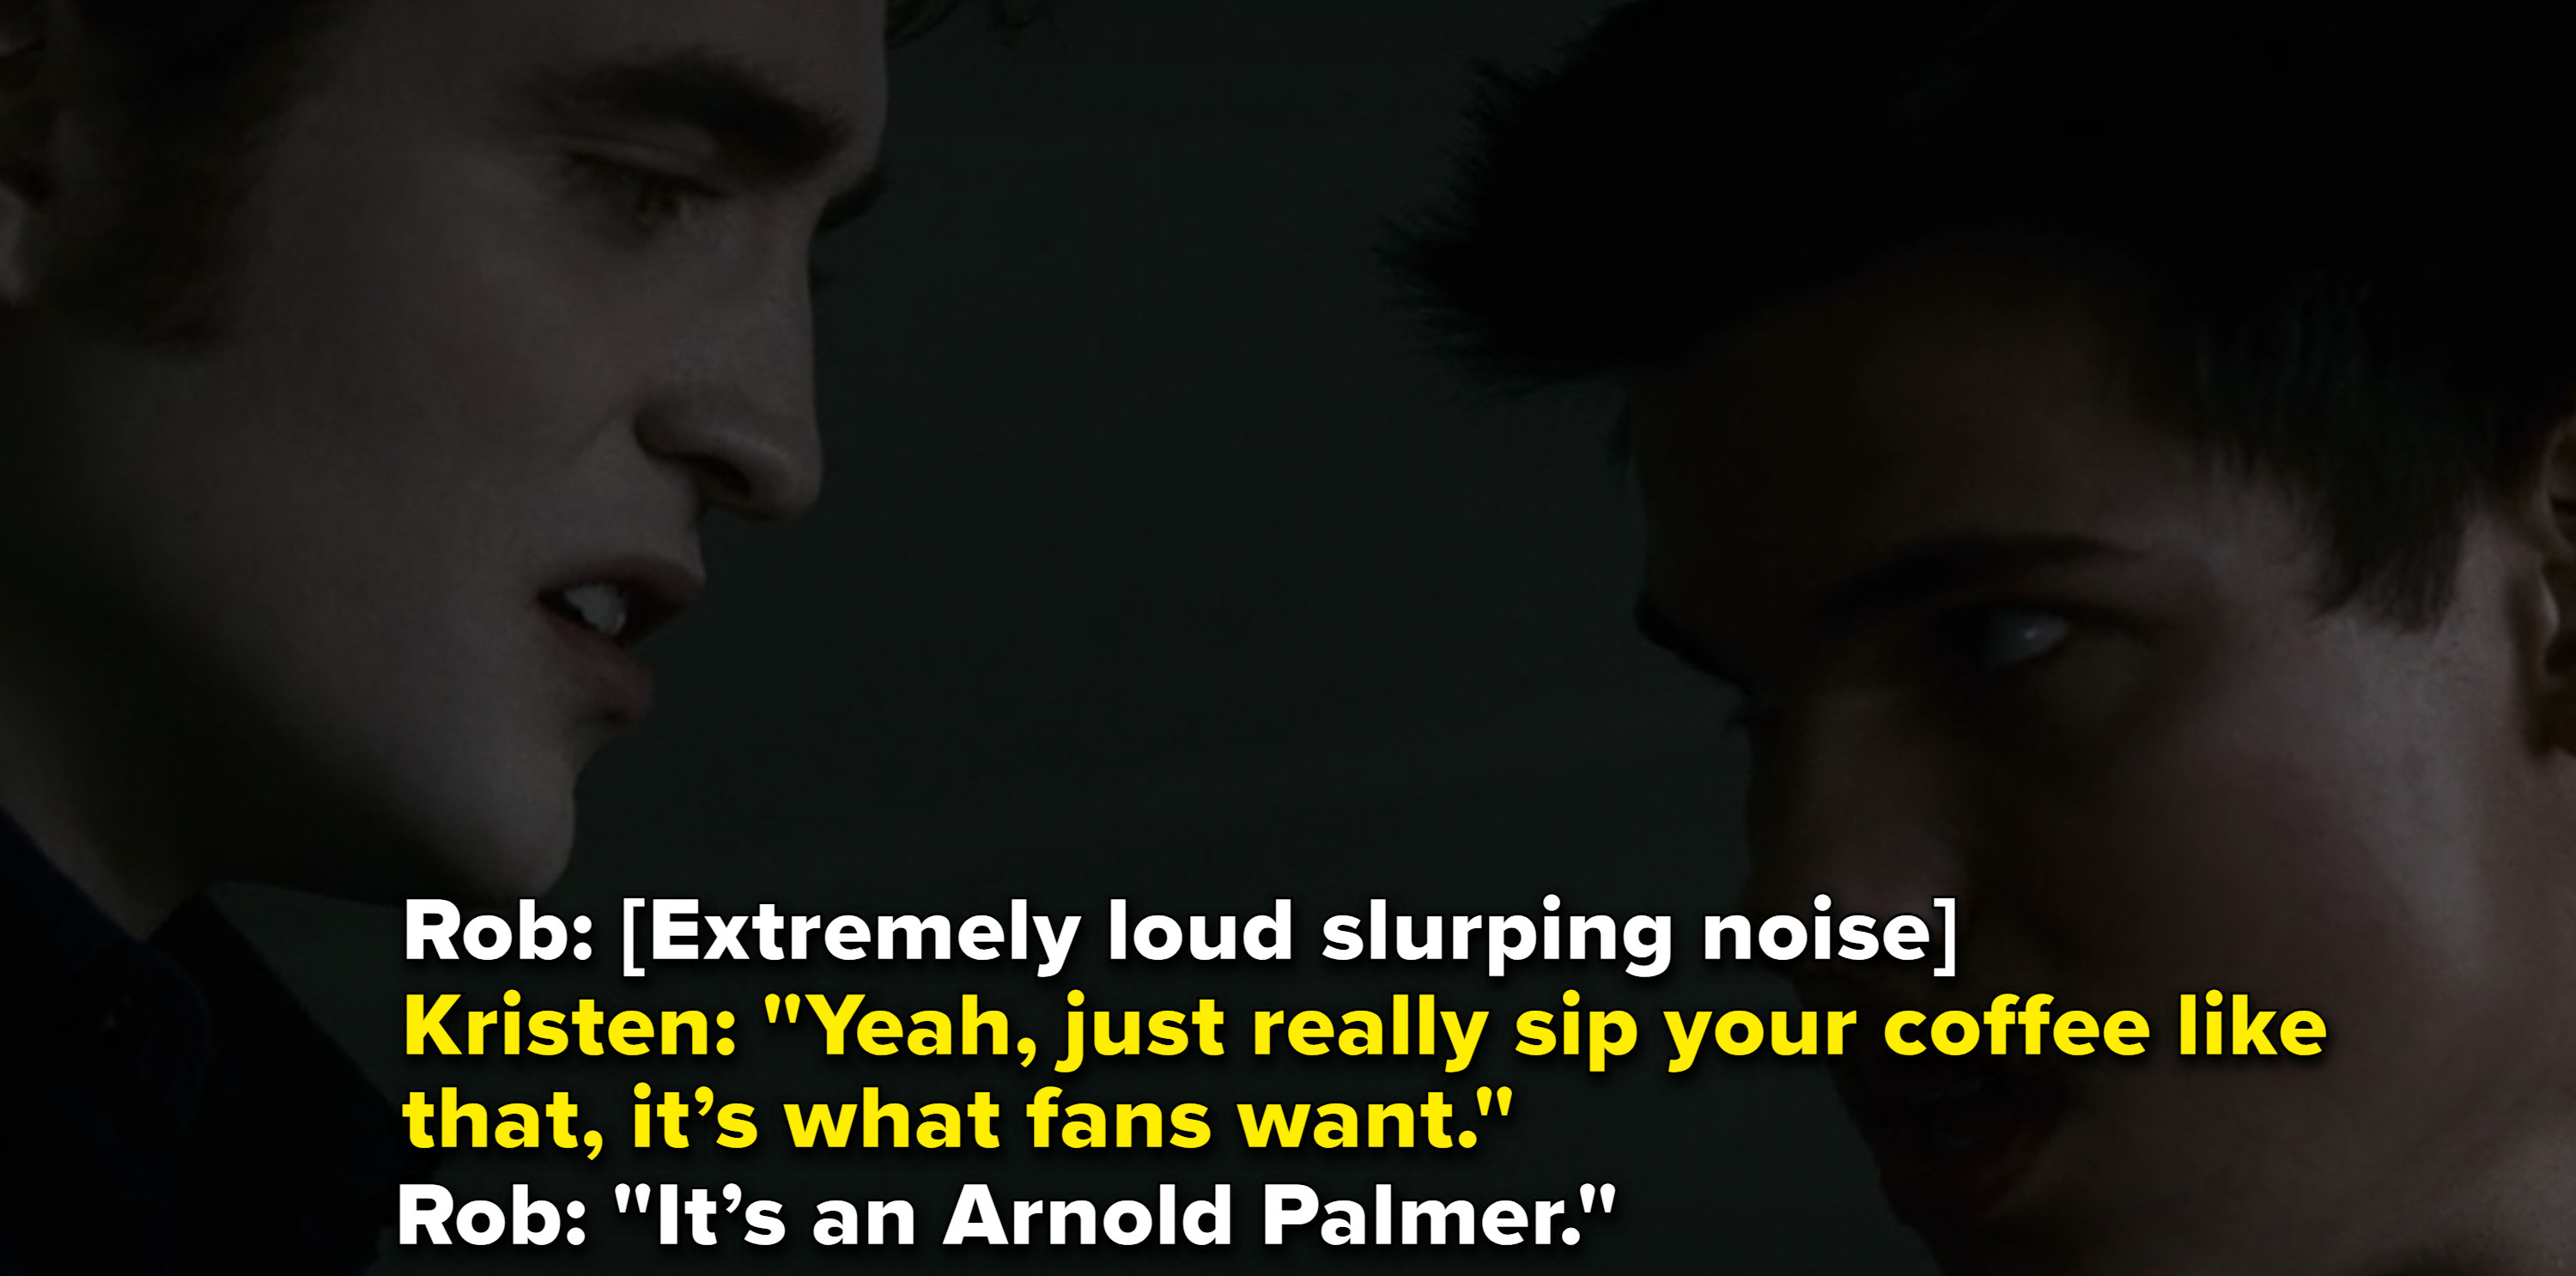 RobSlurps loudly. Kristen: yeah just really sip your coffee like that it's what fans want. Rob: It's an arnold palmer